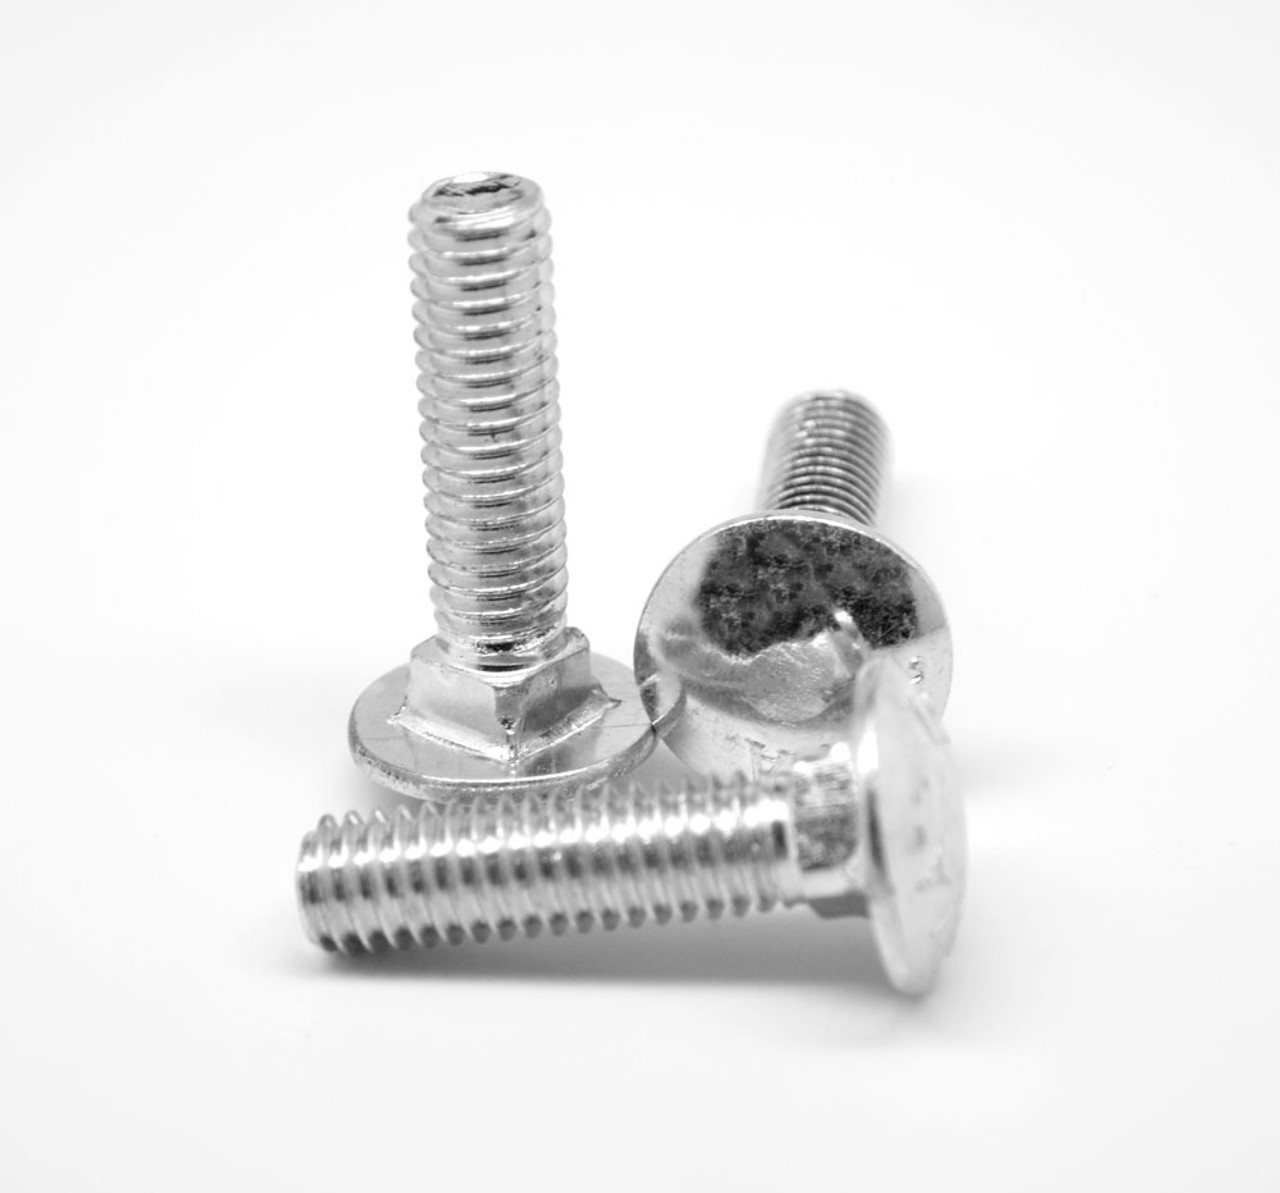 """#10-24 x 1 1/2"""" (FT) Coarse Thread A307 Grade A Carriage Bolt Low Carbon Steel Zinc Plated"""